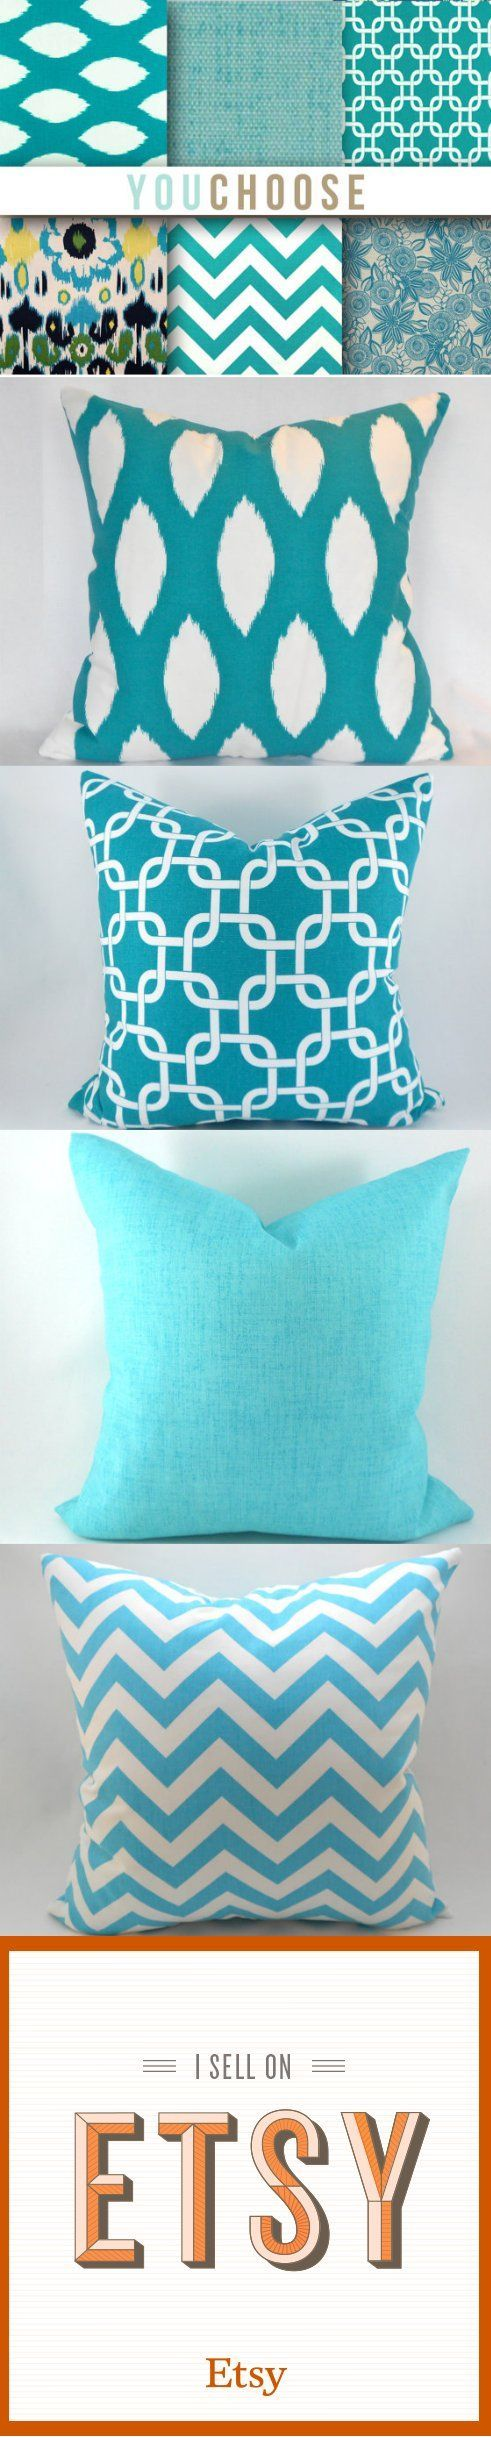 Turquoise Pillow Covers ANY SIZE Decorative Pillow Cover Turquoise Blue Pillows You Choose | $15 +